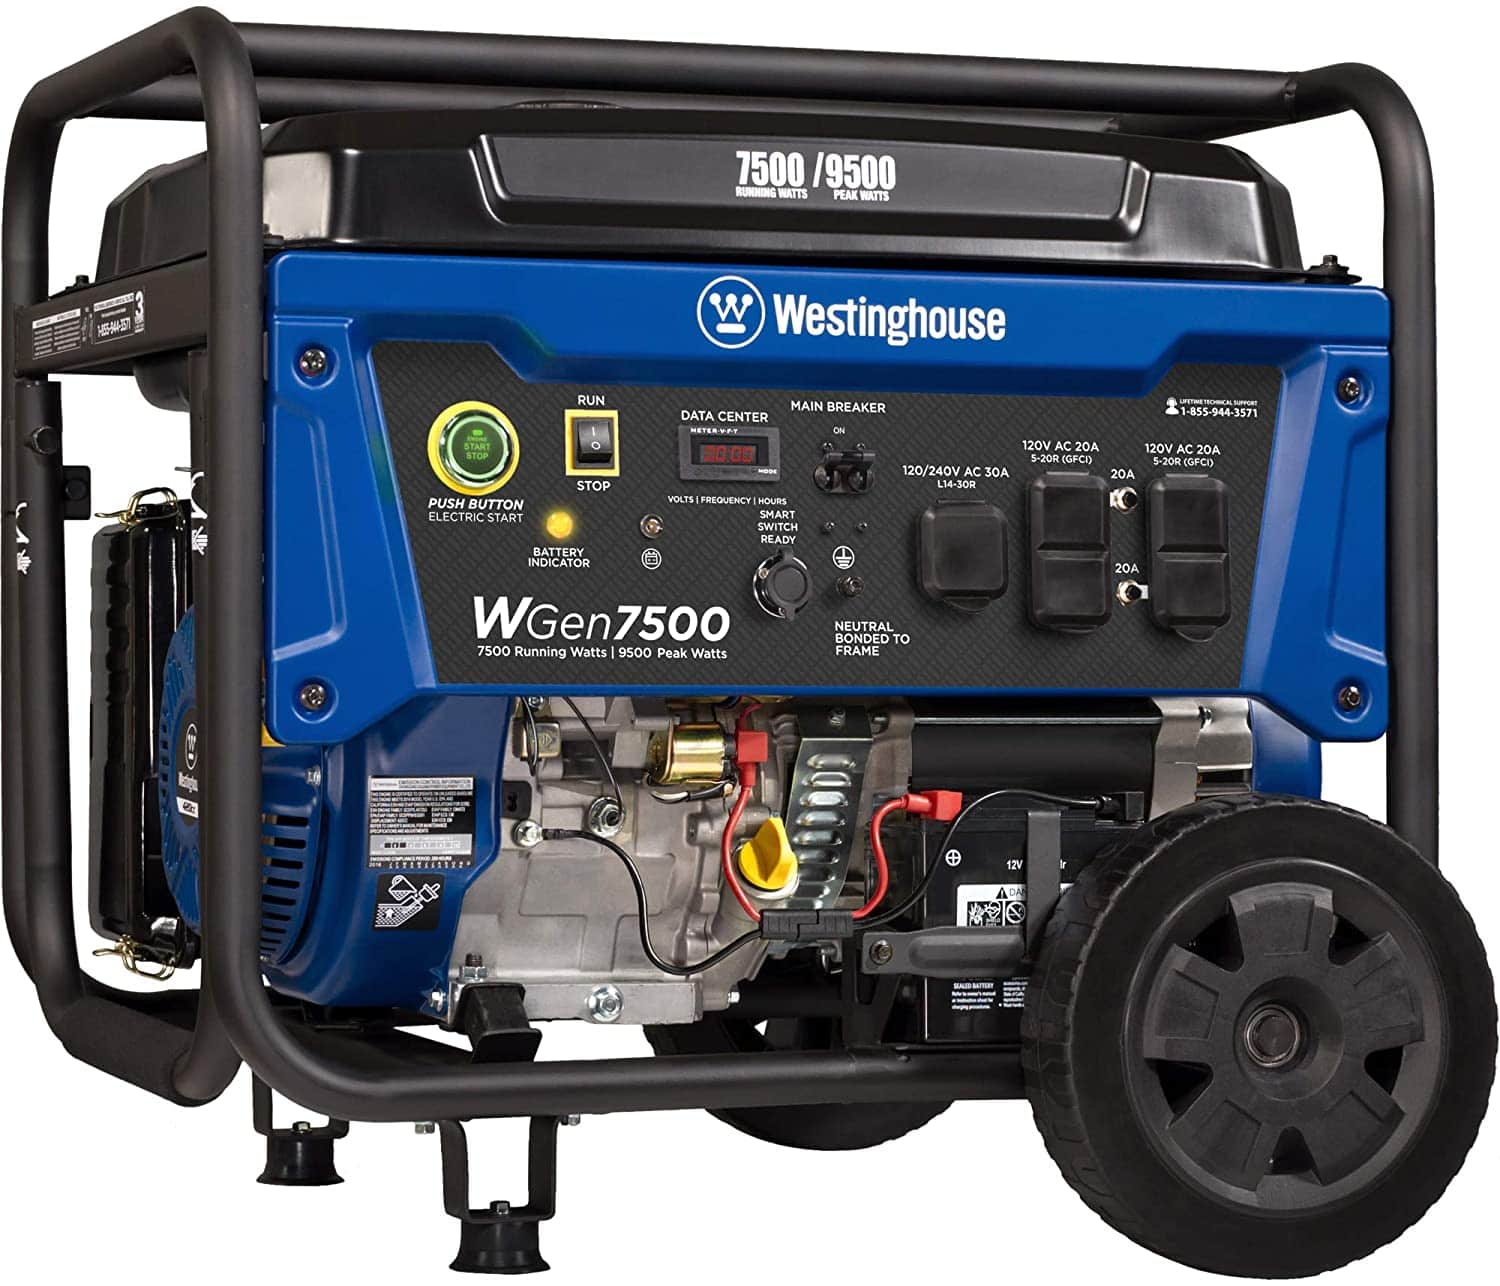 Westinghouse WGen7500 Portable Generator with Remote Electric Start - 7500 Rated Watts & 9500 Peak Watts - Gas Power reg $924.70, now $628.70 free prime shipping